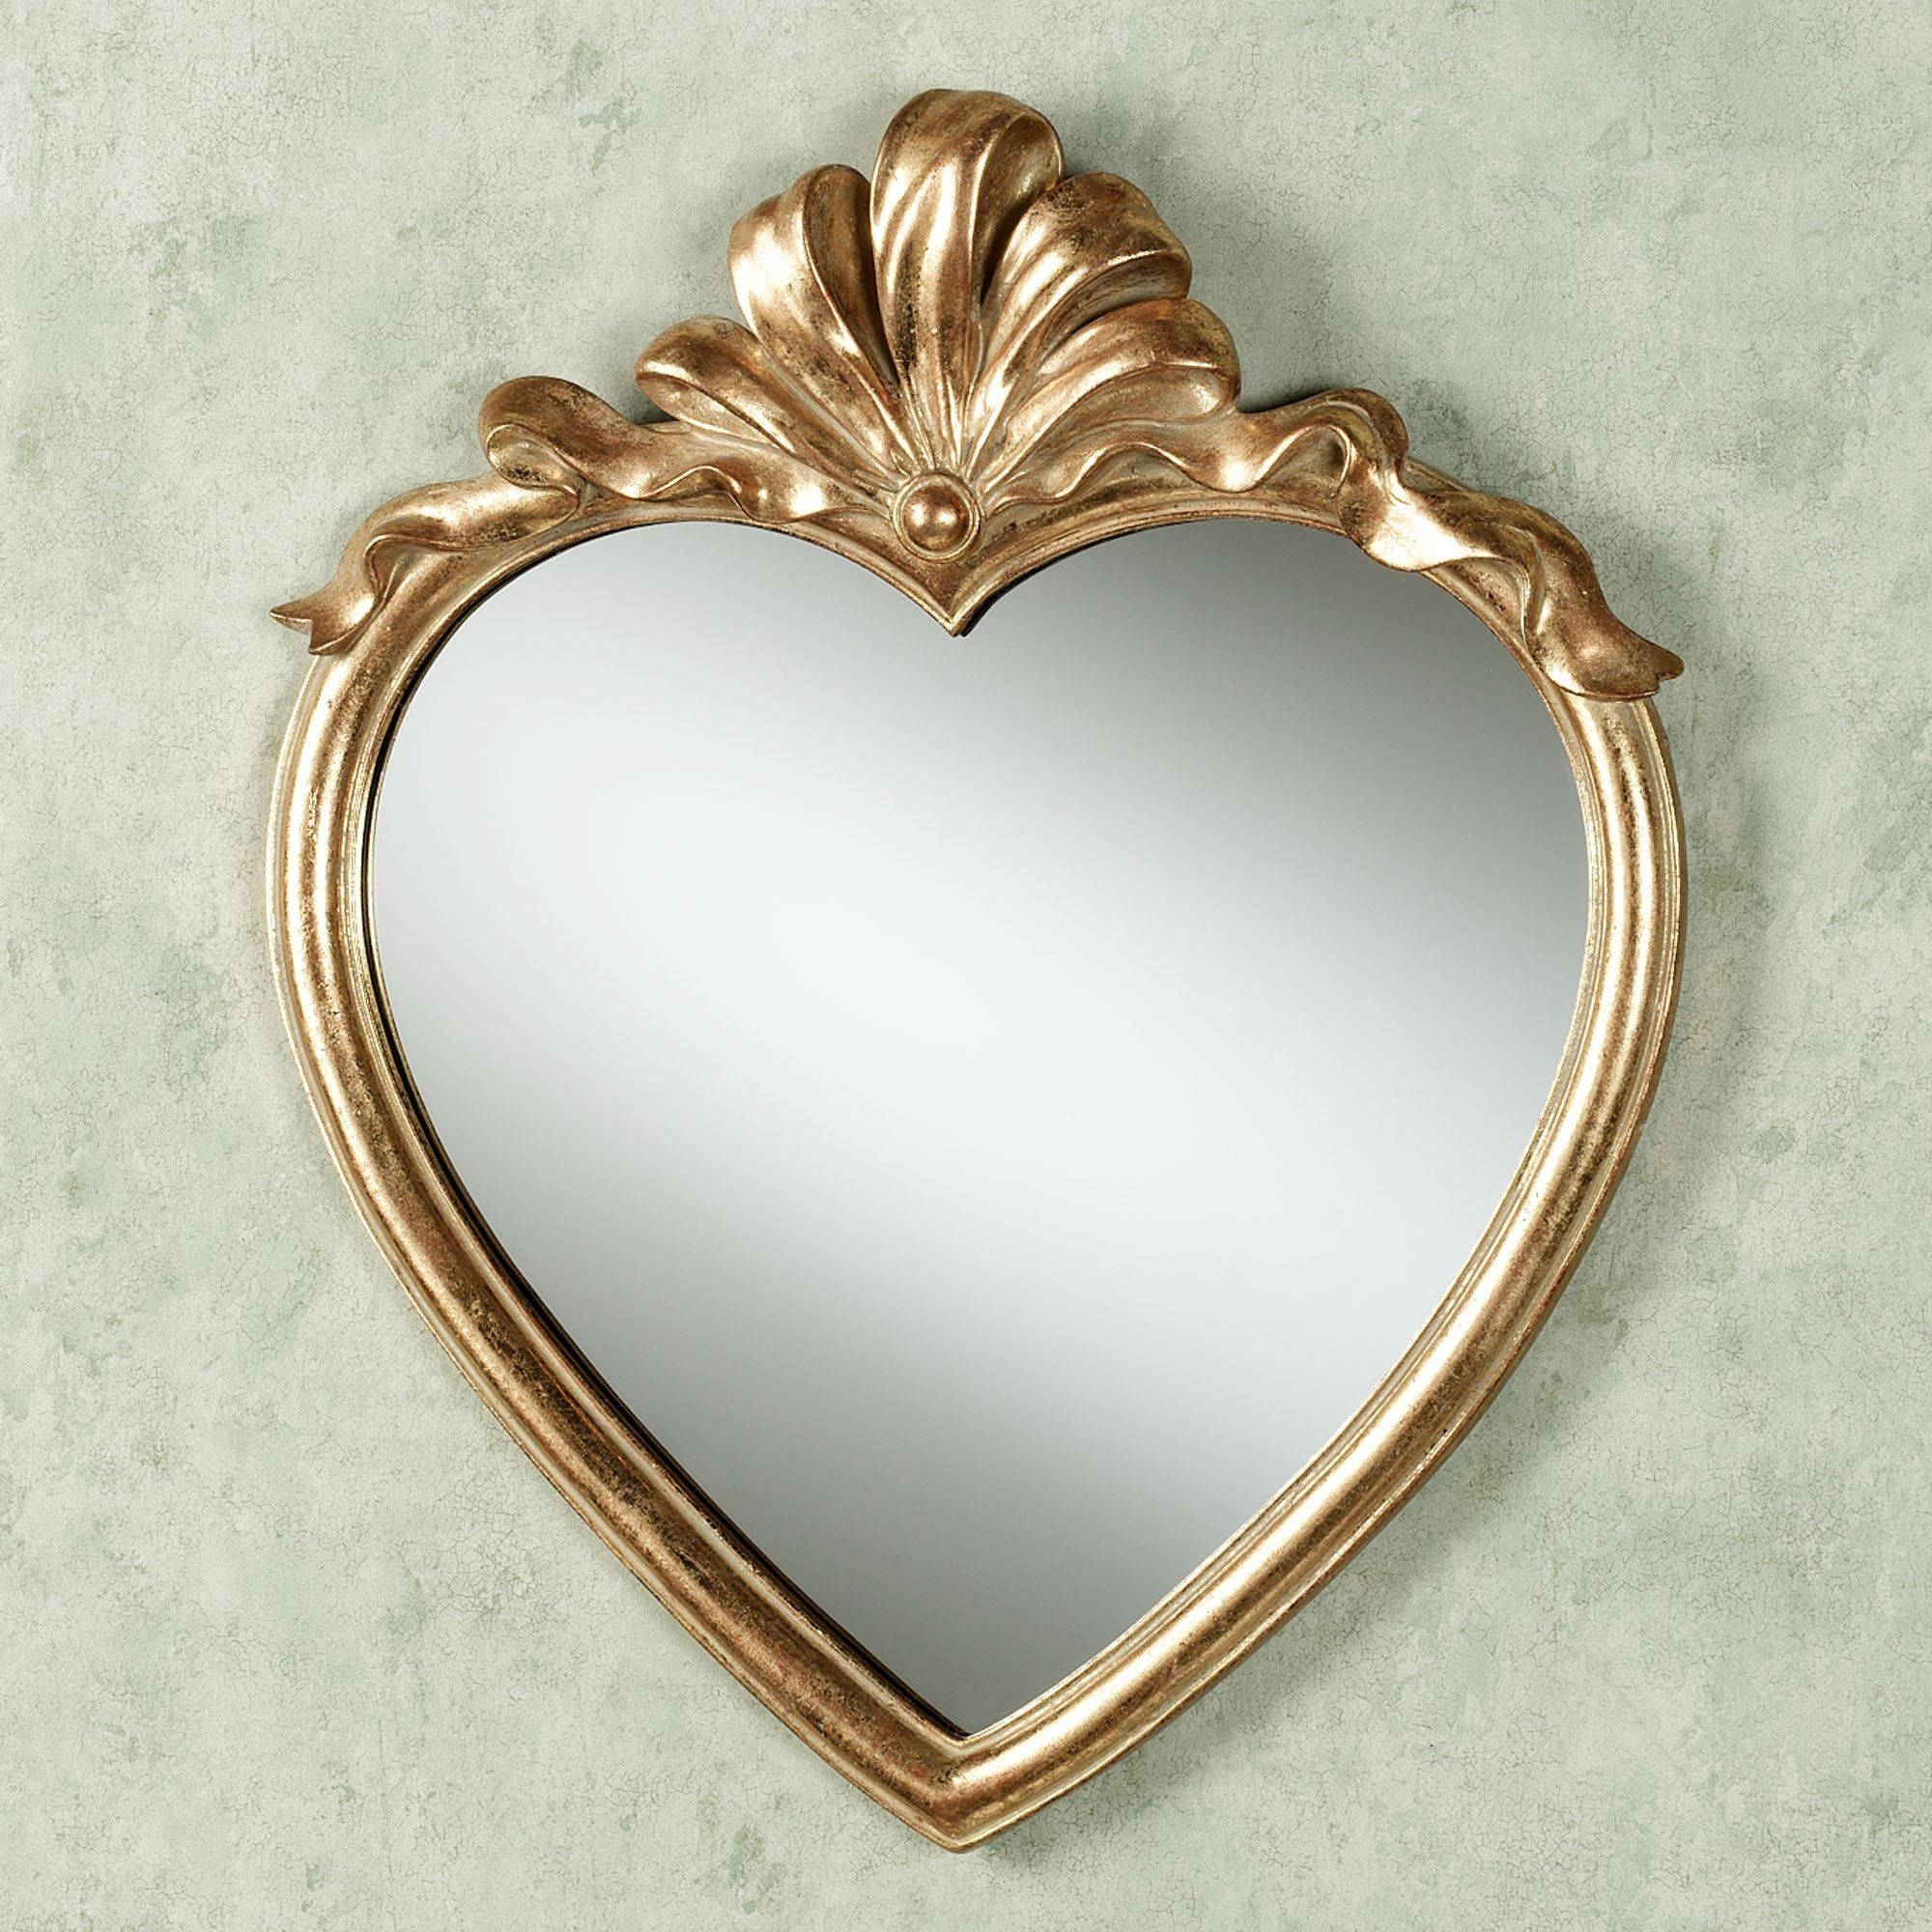 Karessa Heart Wall Mirror throughout Heart Shaped Mirrors for Walls (Image 6 of 15)